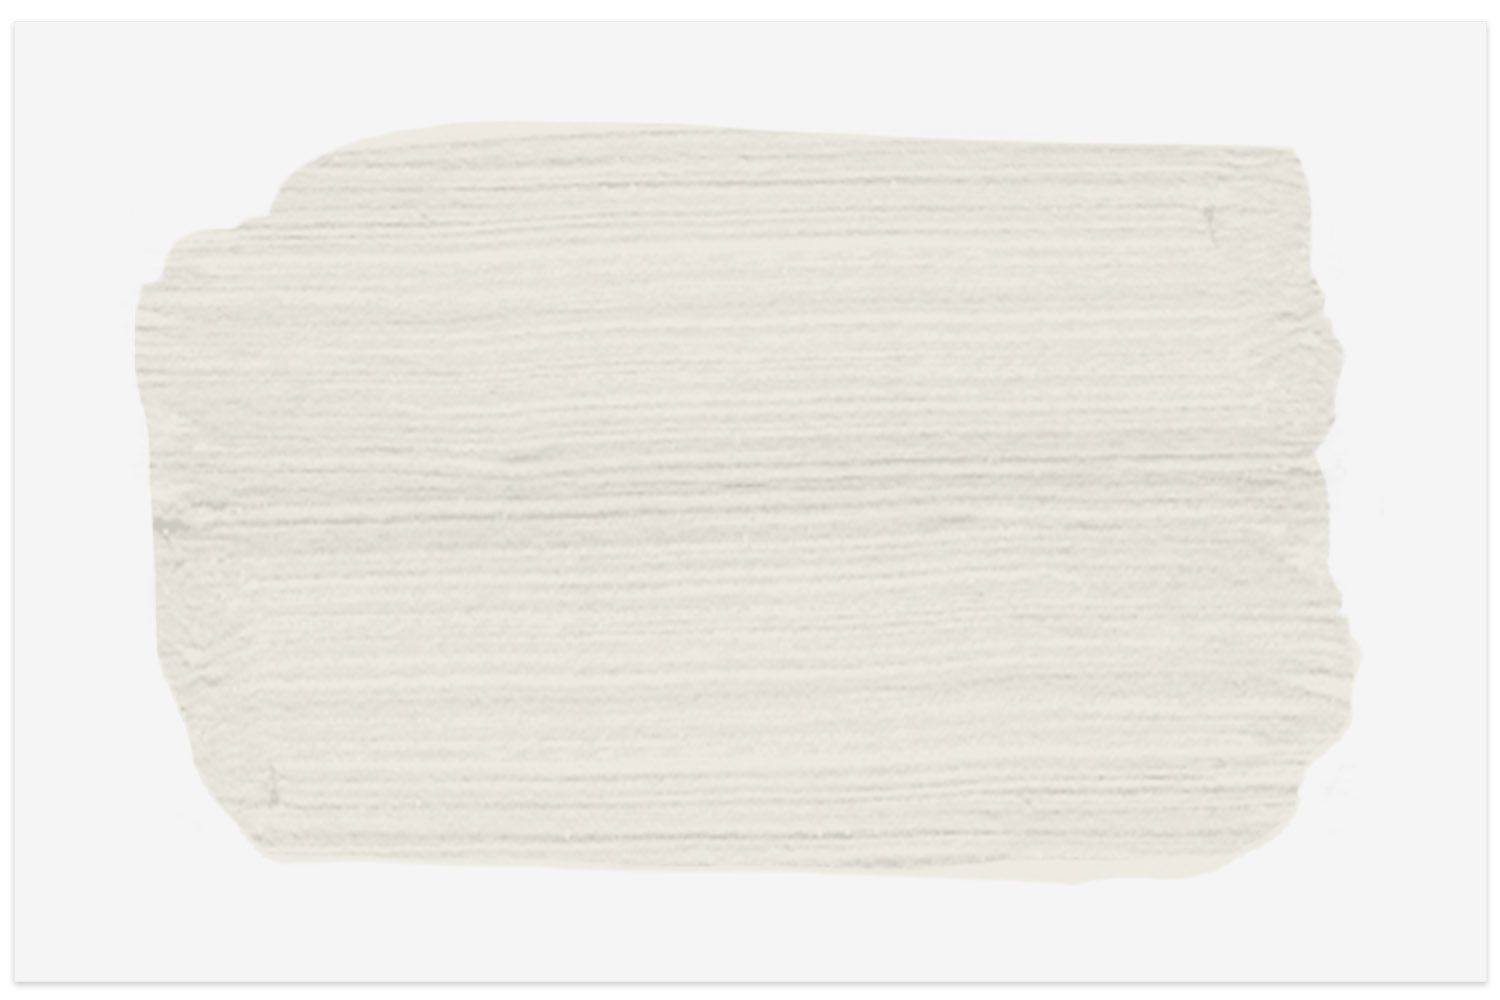 Alabaster paint swatch from Sherwin-Williams